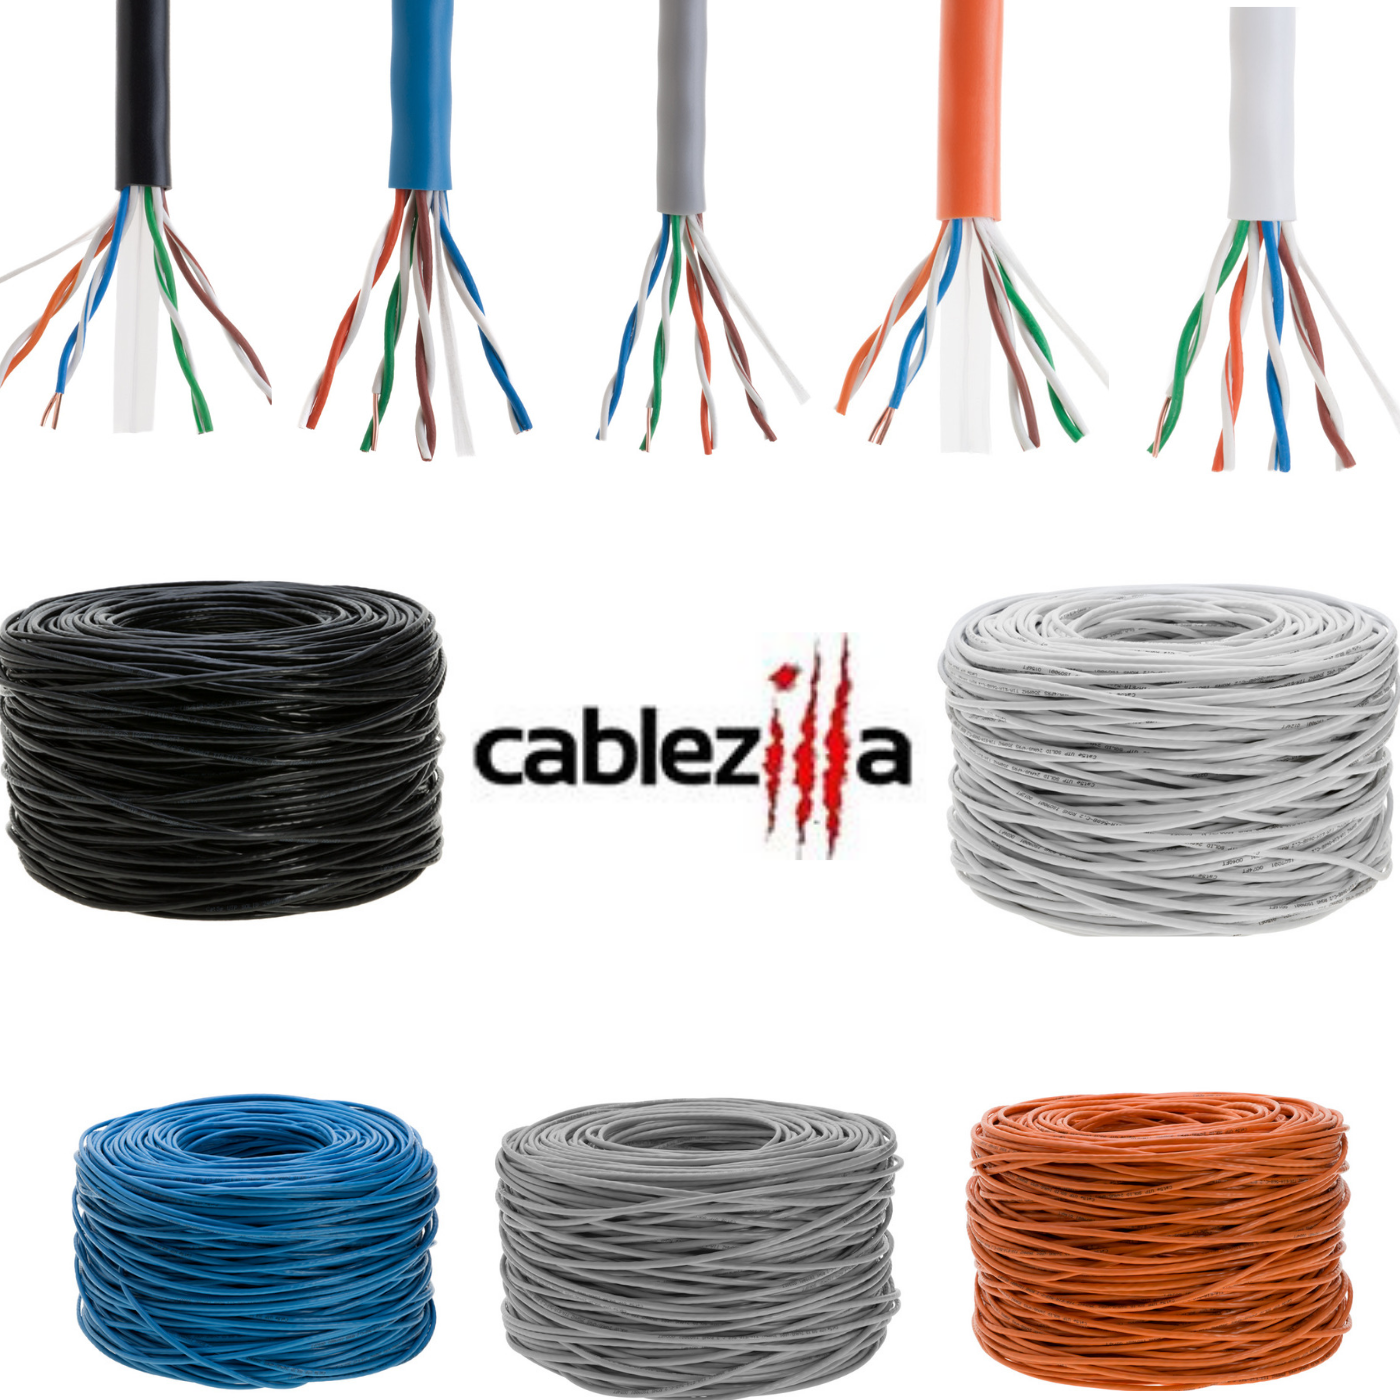 Sonovin Snagless//Molded Boot Cat5e Gray Ethernet Crossover Cable Pack of 5 7 Foot Color:Gray